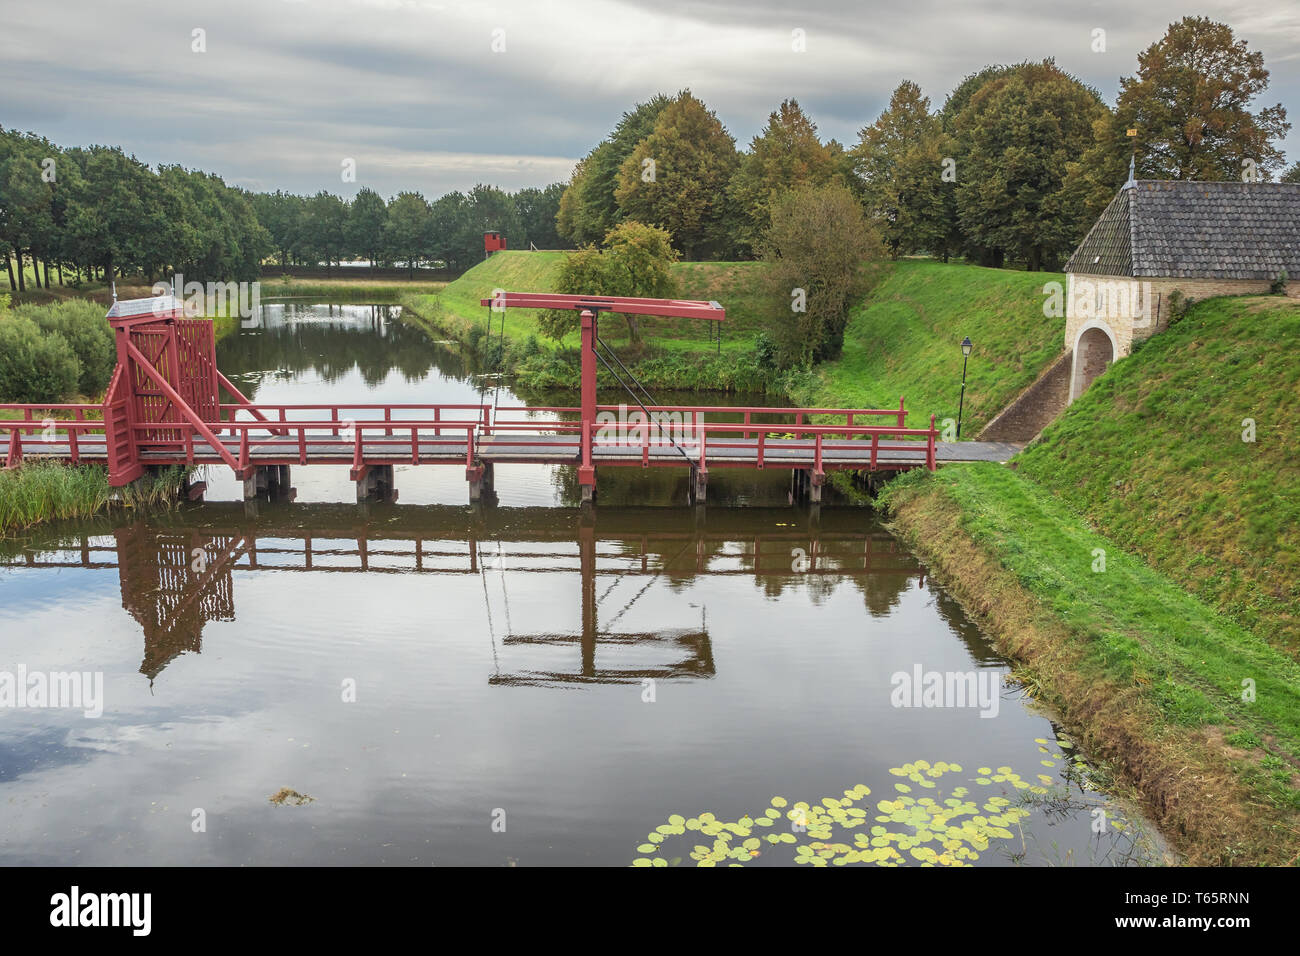 Looking down at the access bridge to the fortification of Bourtange - Stock Image